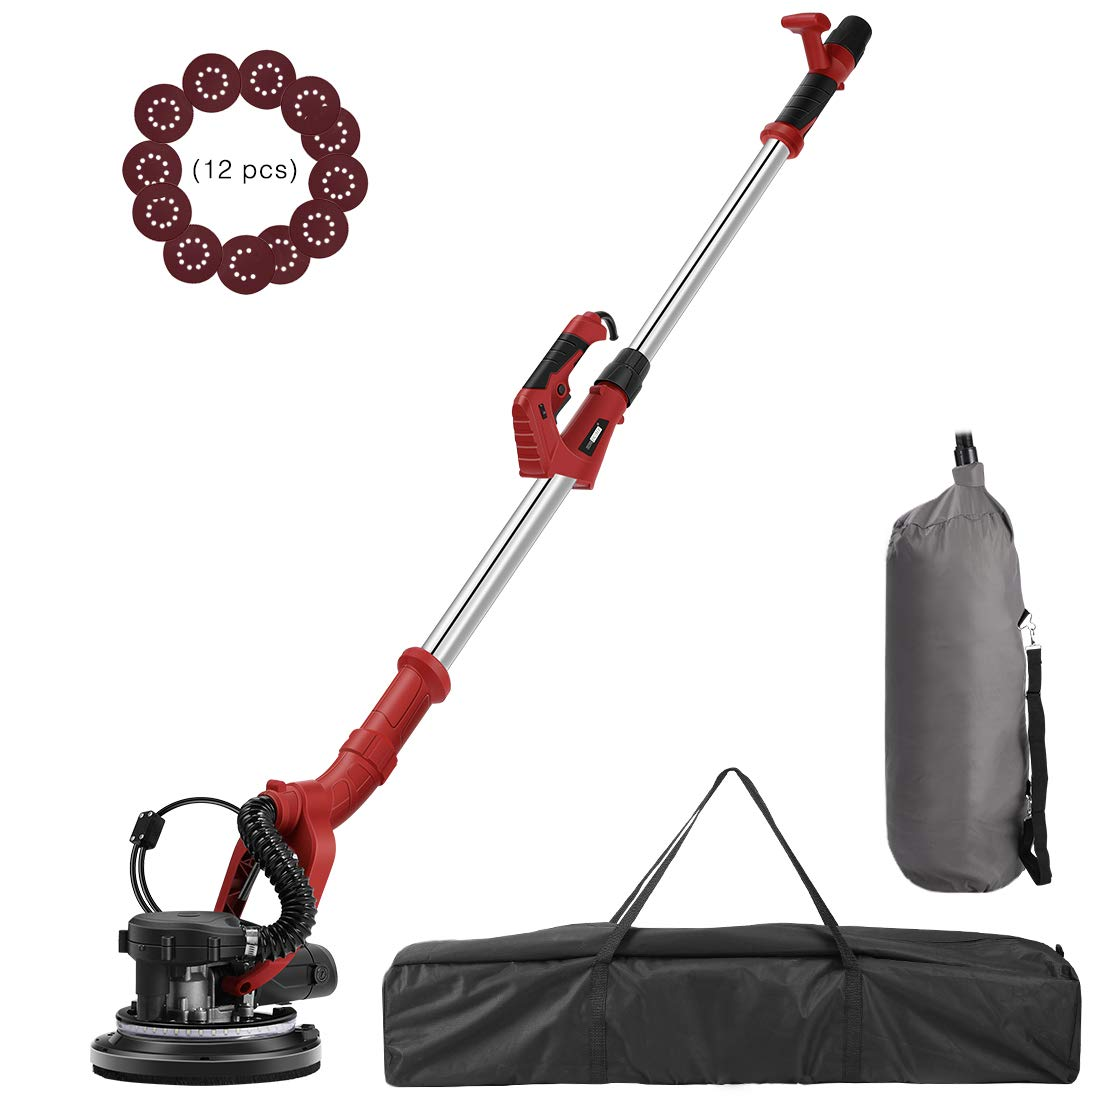 VIVOHOME 750W Electric Adjustable Variable Speed Drywall Sander Machine with Automatic Vacuum System LED Light and Storage Bag ETL Listed by VIVOHOME